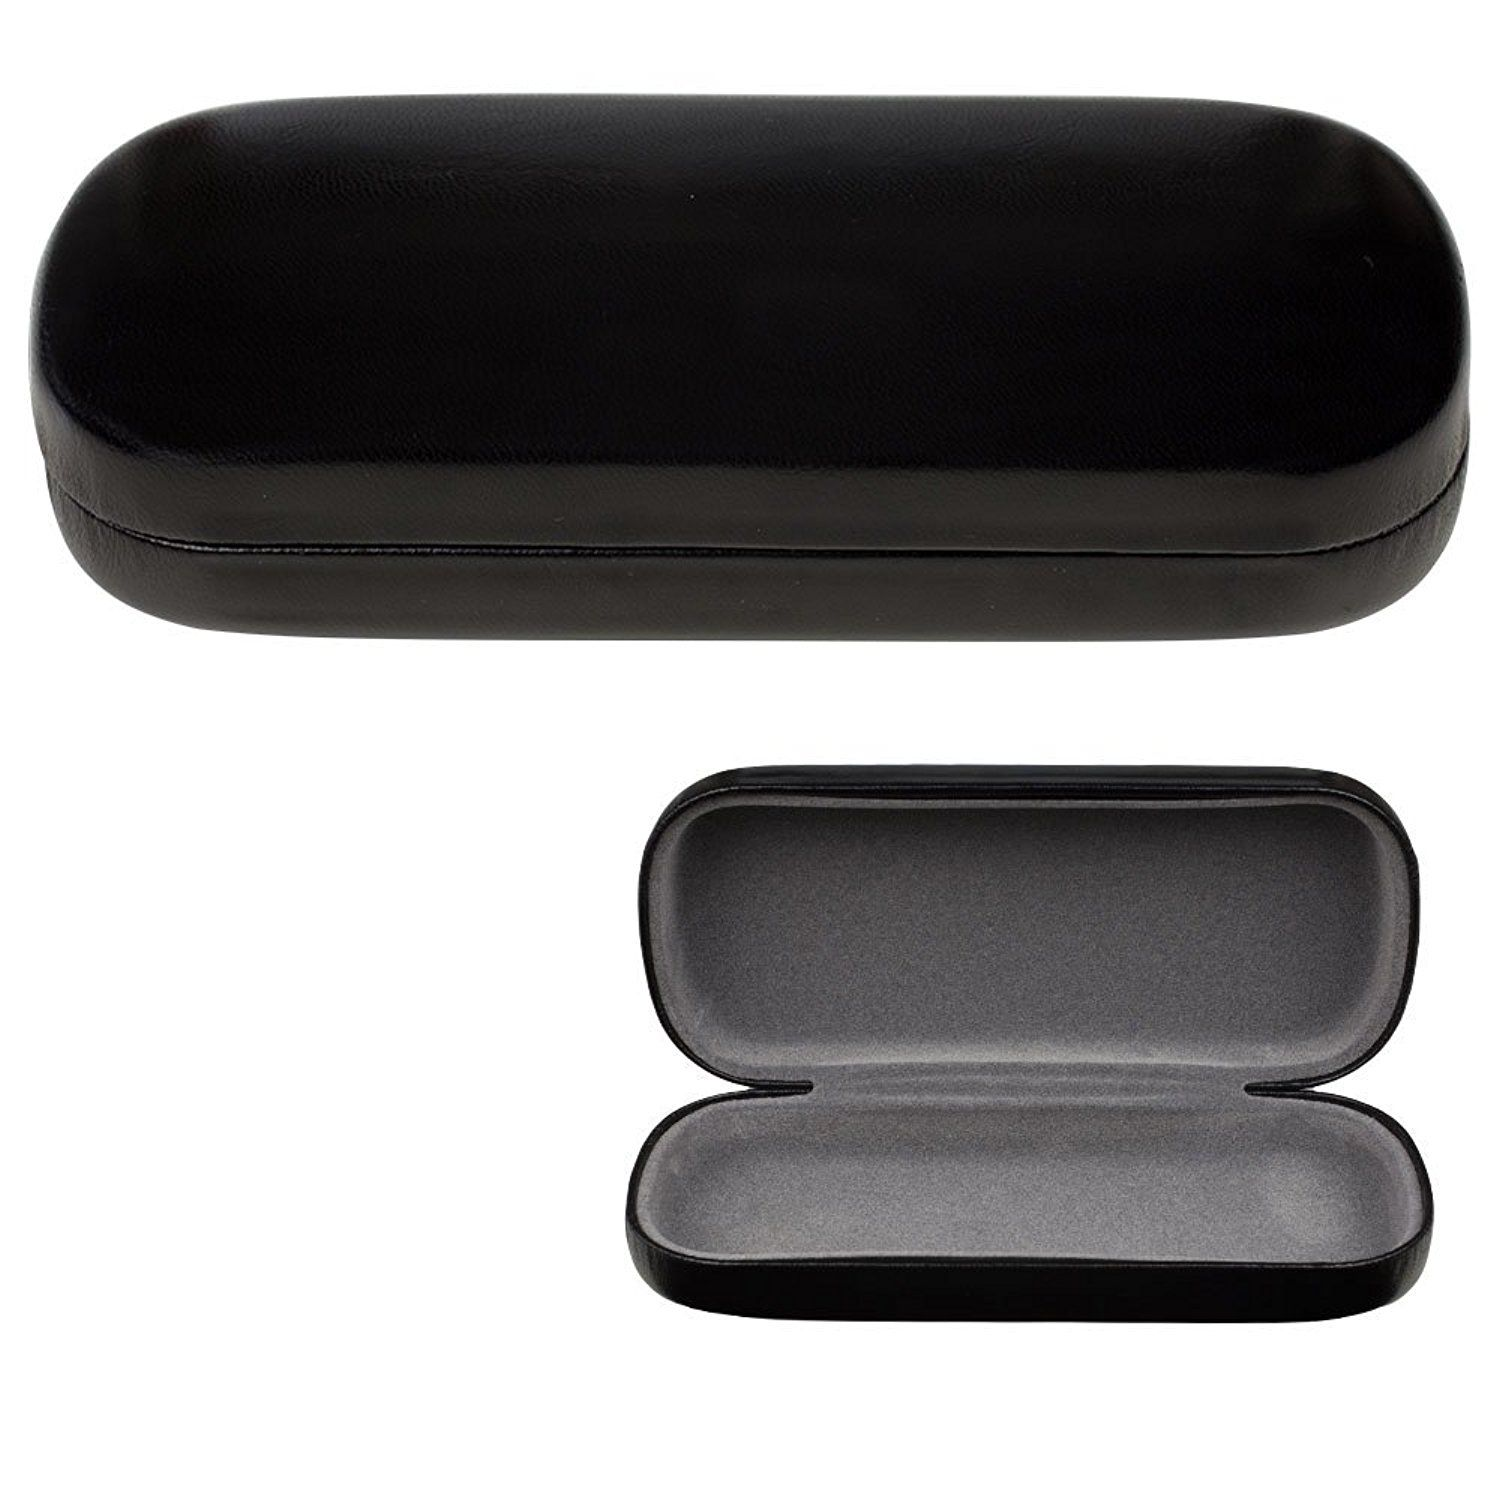 Amazon Com Glasses Case Hard Shell Protects Amp Stores Sunglasses Reading Eyeglasses And Most Eyewear Suitable Glasses Case Hard Glasses Case Sunglasses